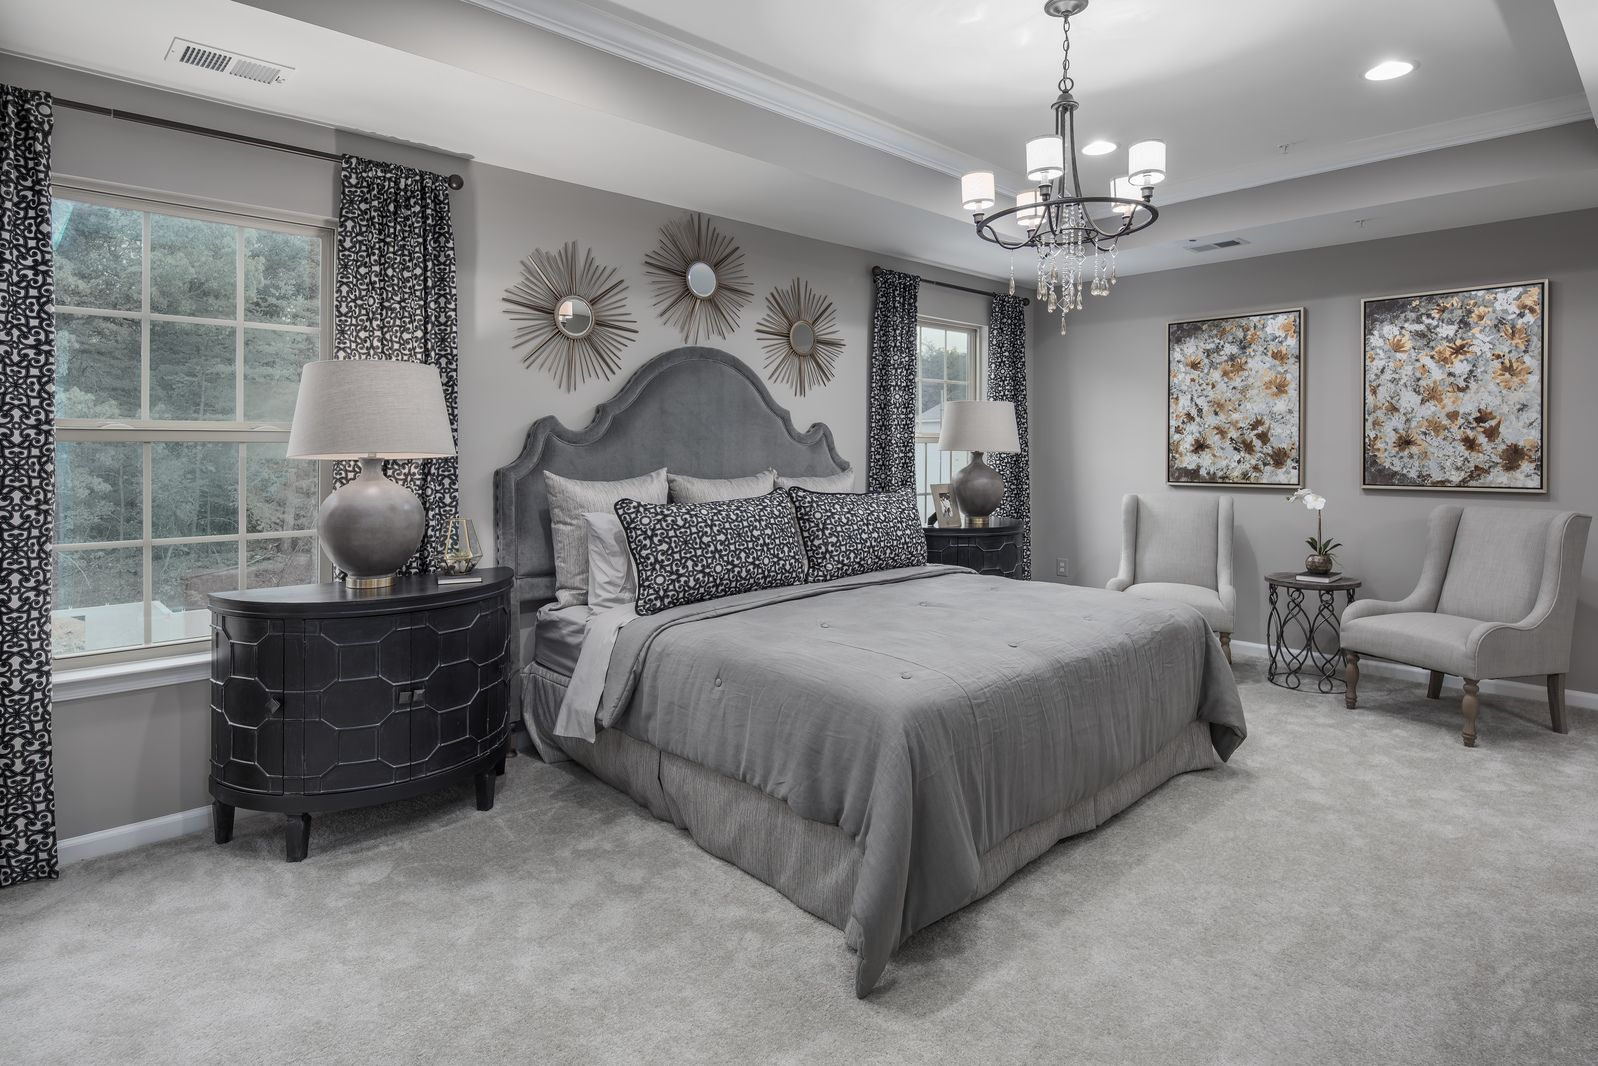 Bedroom featured in the Columbia By Ryan Homes in Washington, VA